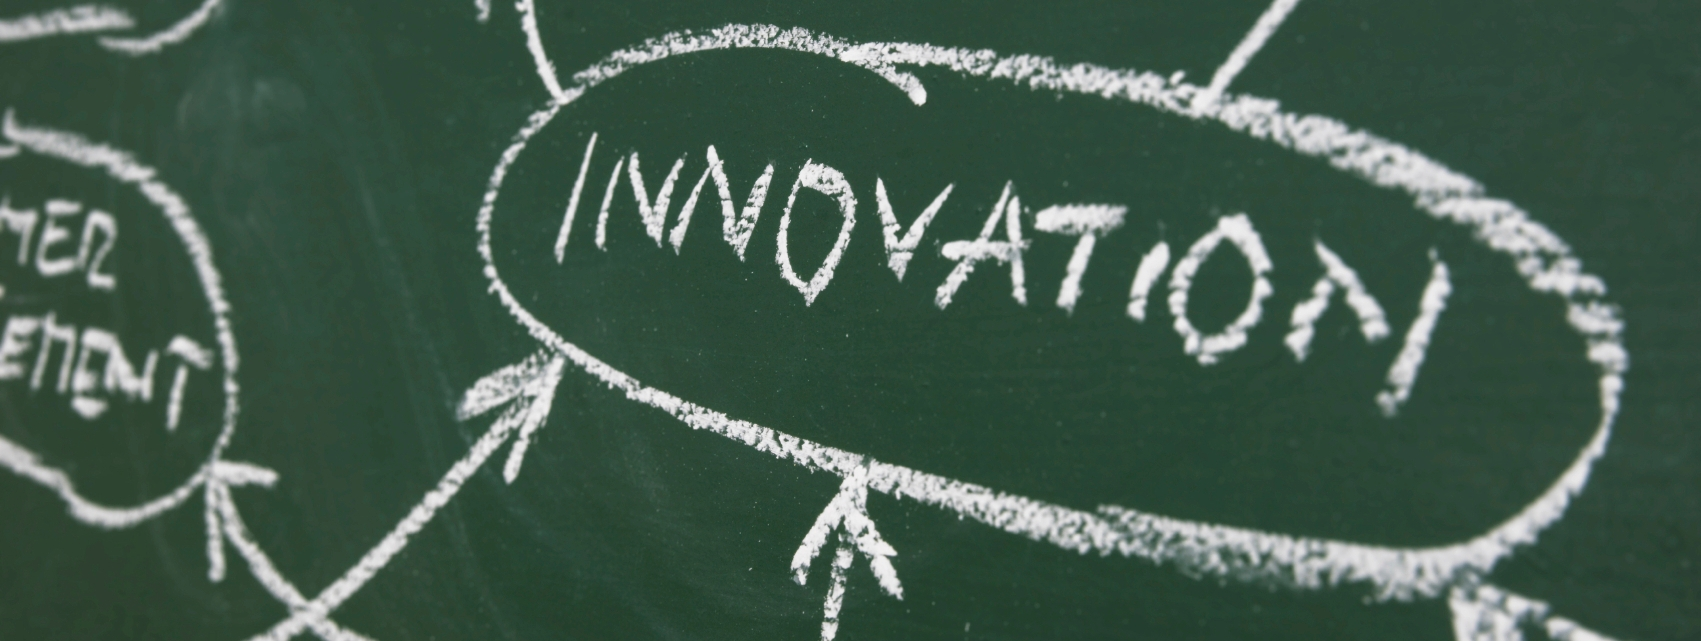 INNOVATION + - cover